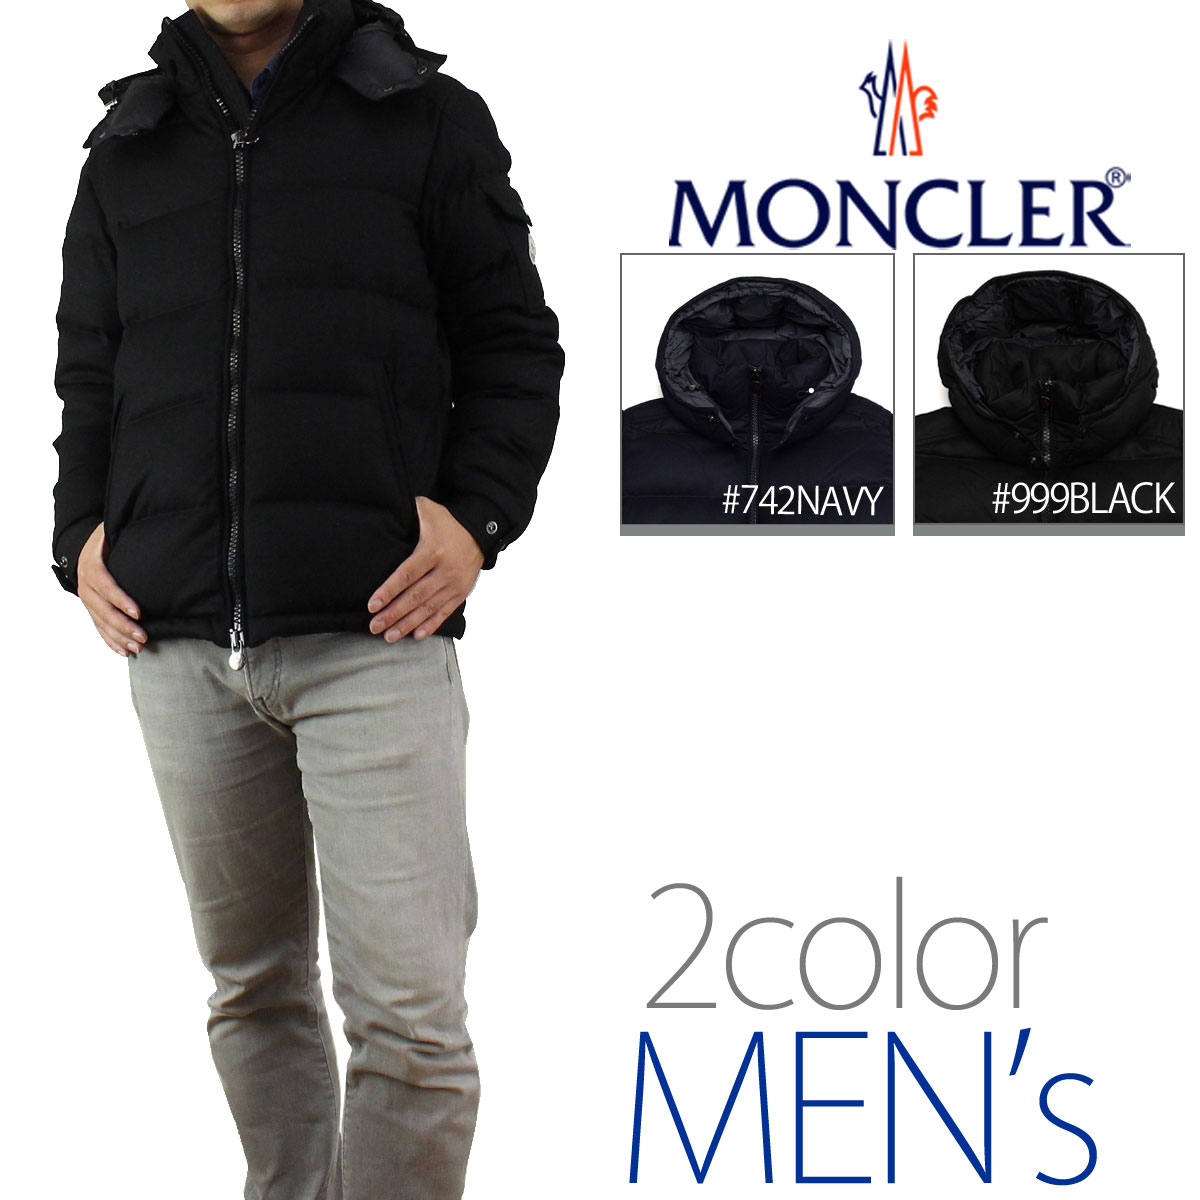 moncler my order